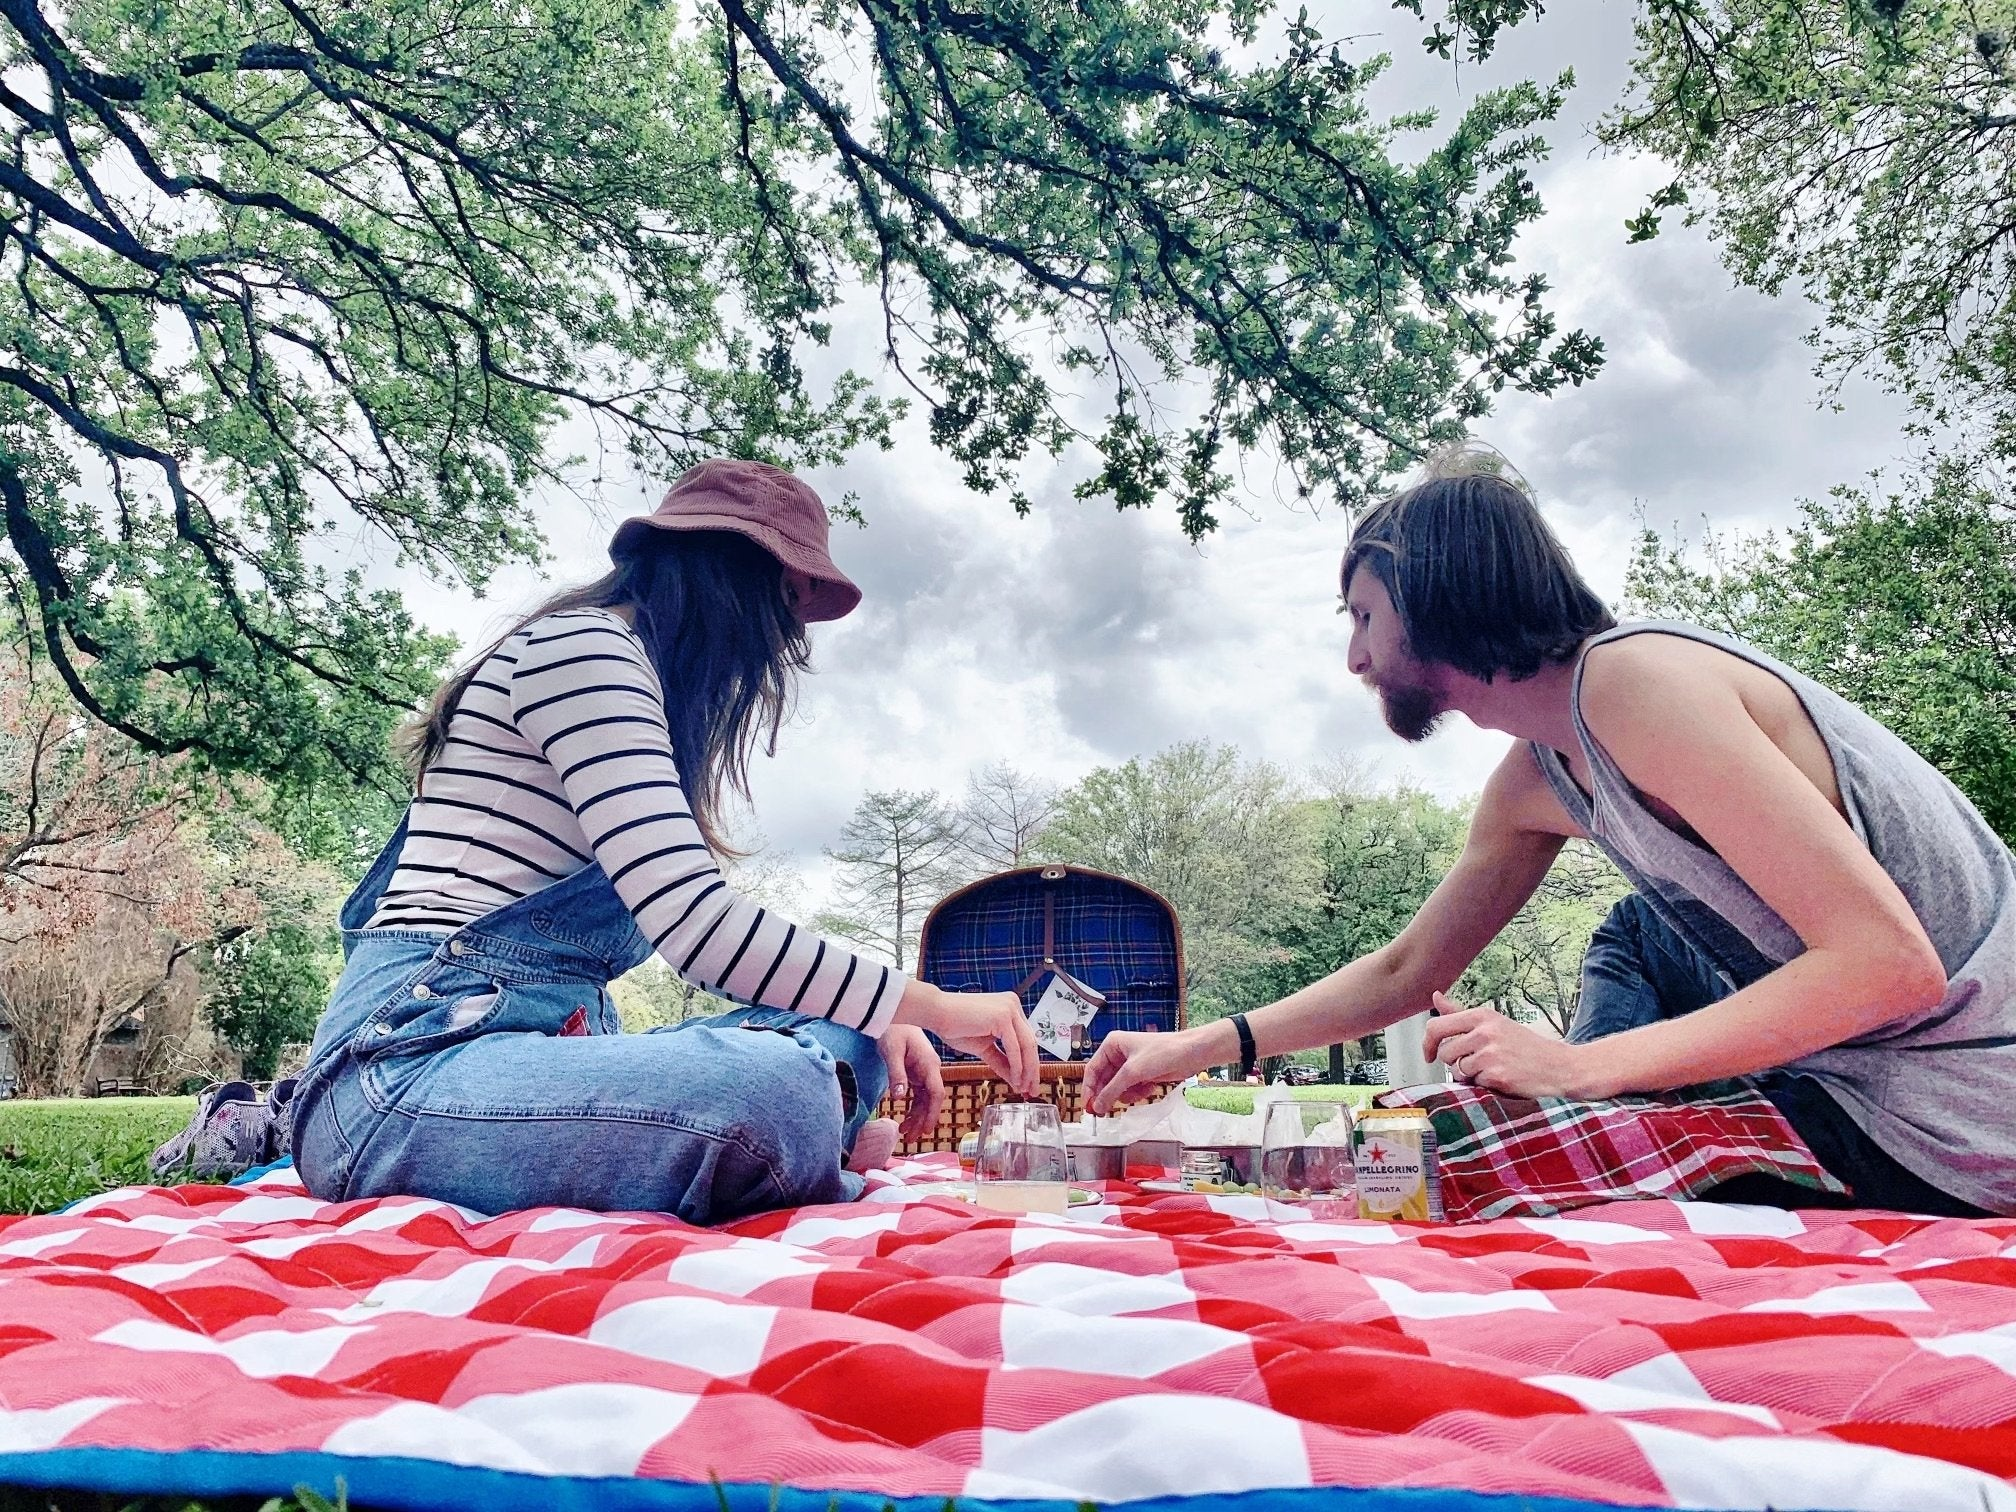 Two people on a casual picnic date with a classic red and white blanket.